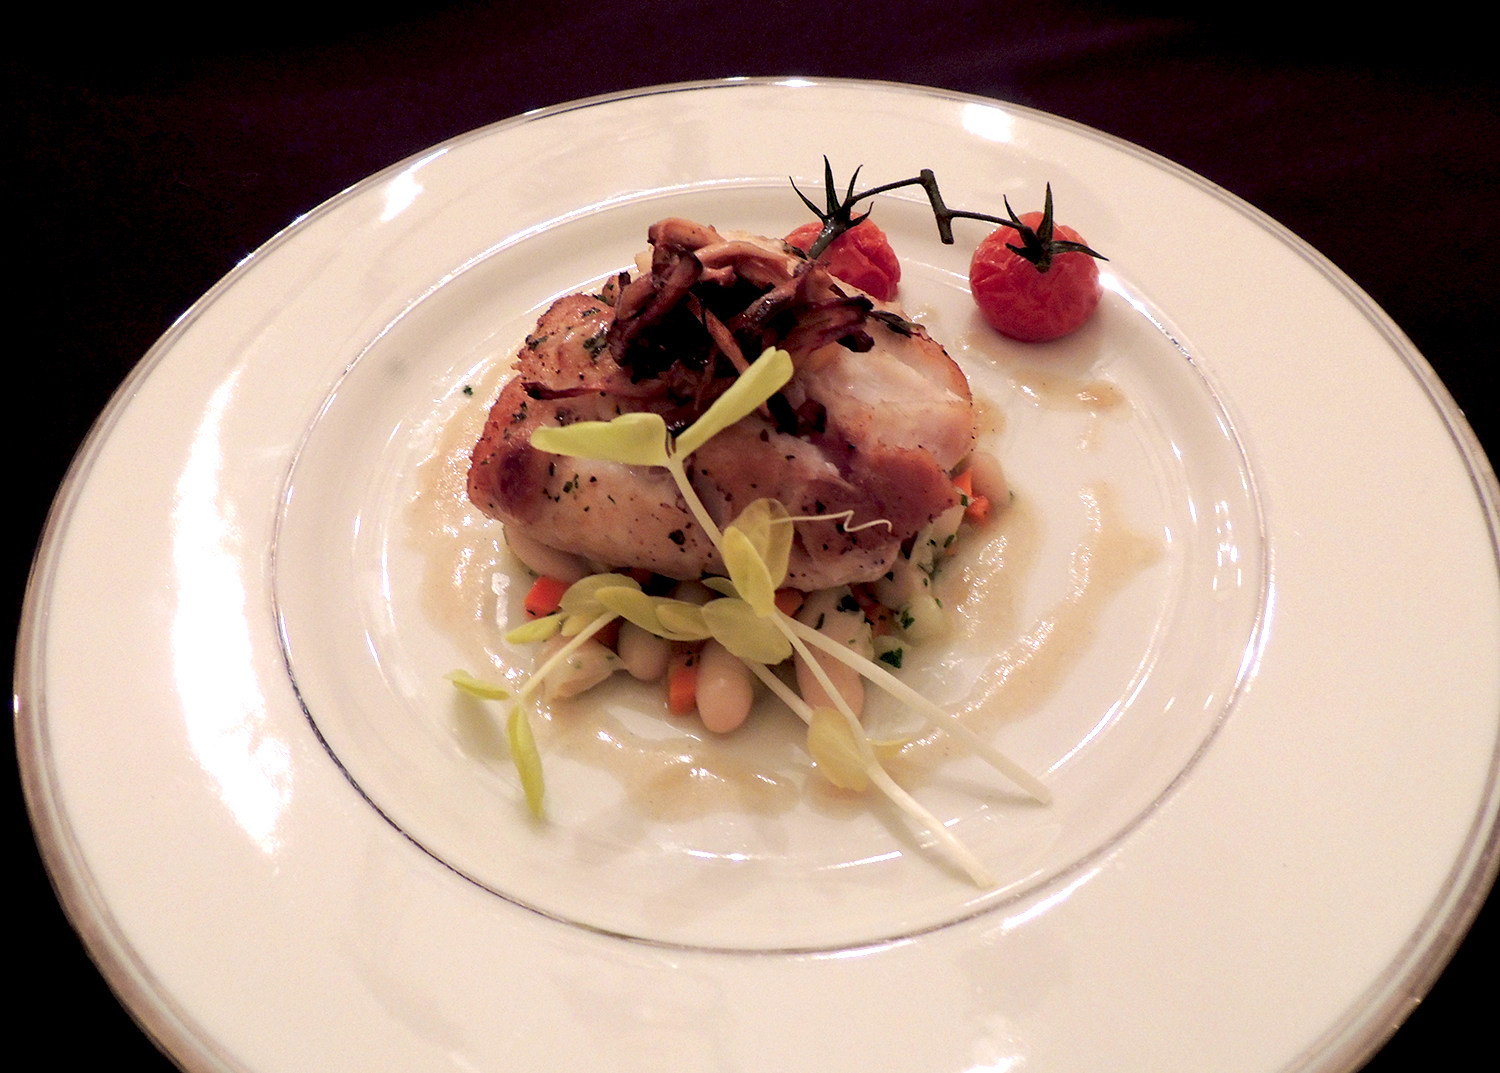 Seared blue nose sea bass, cannelini bean-cherry tomato ragout, chanterelle mushrooms